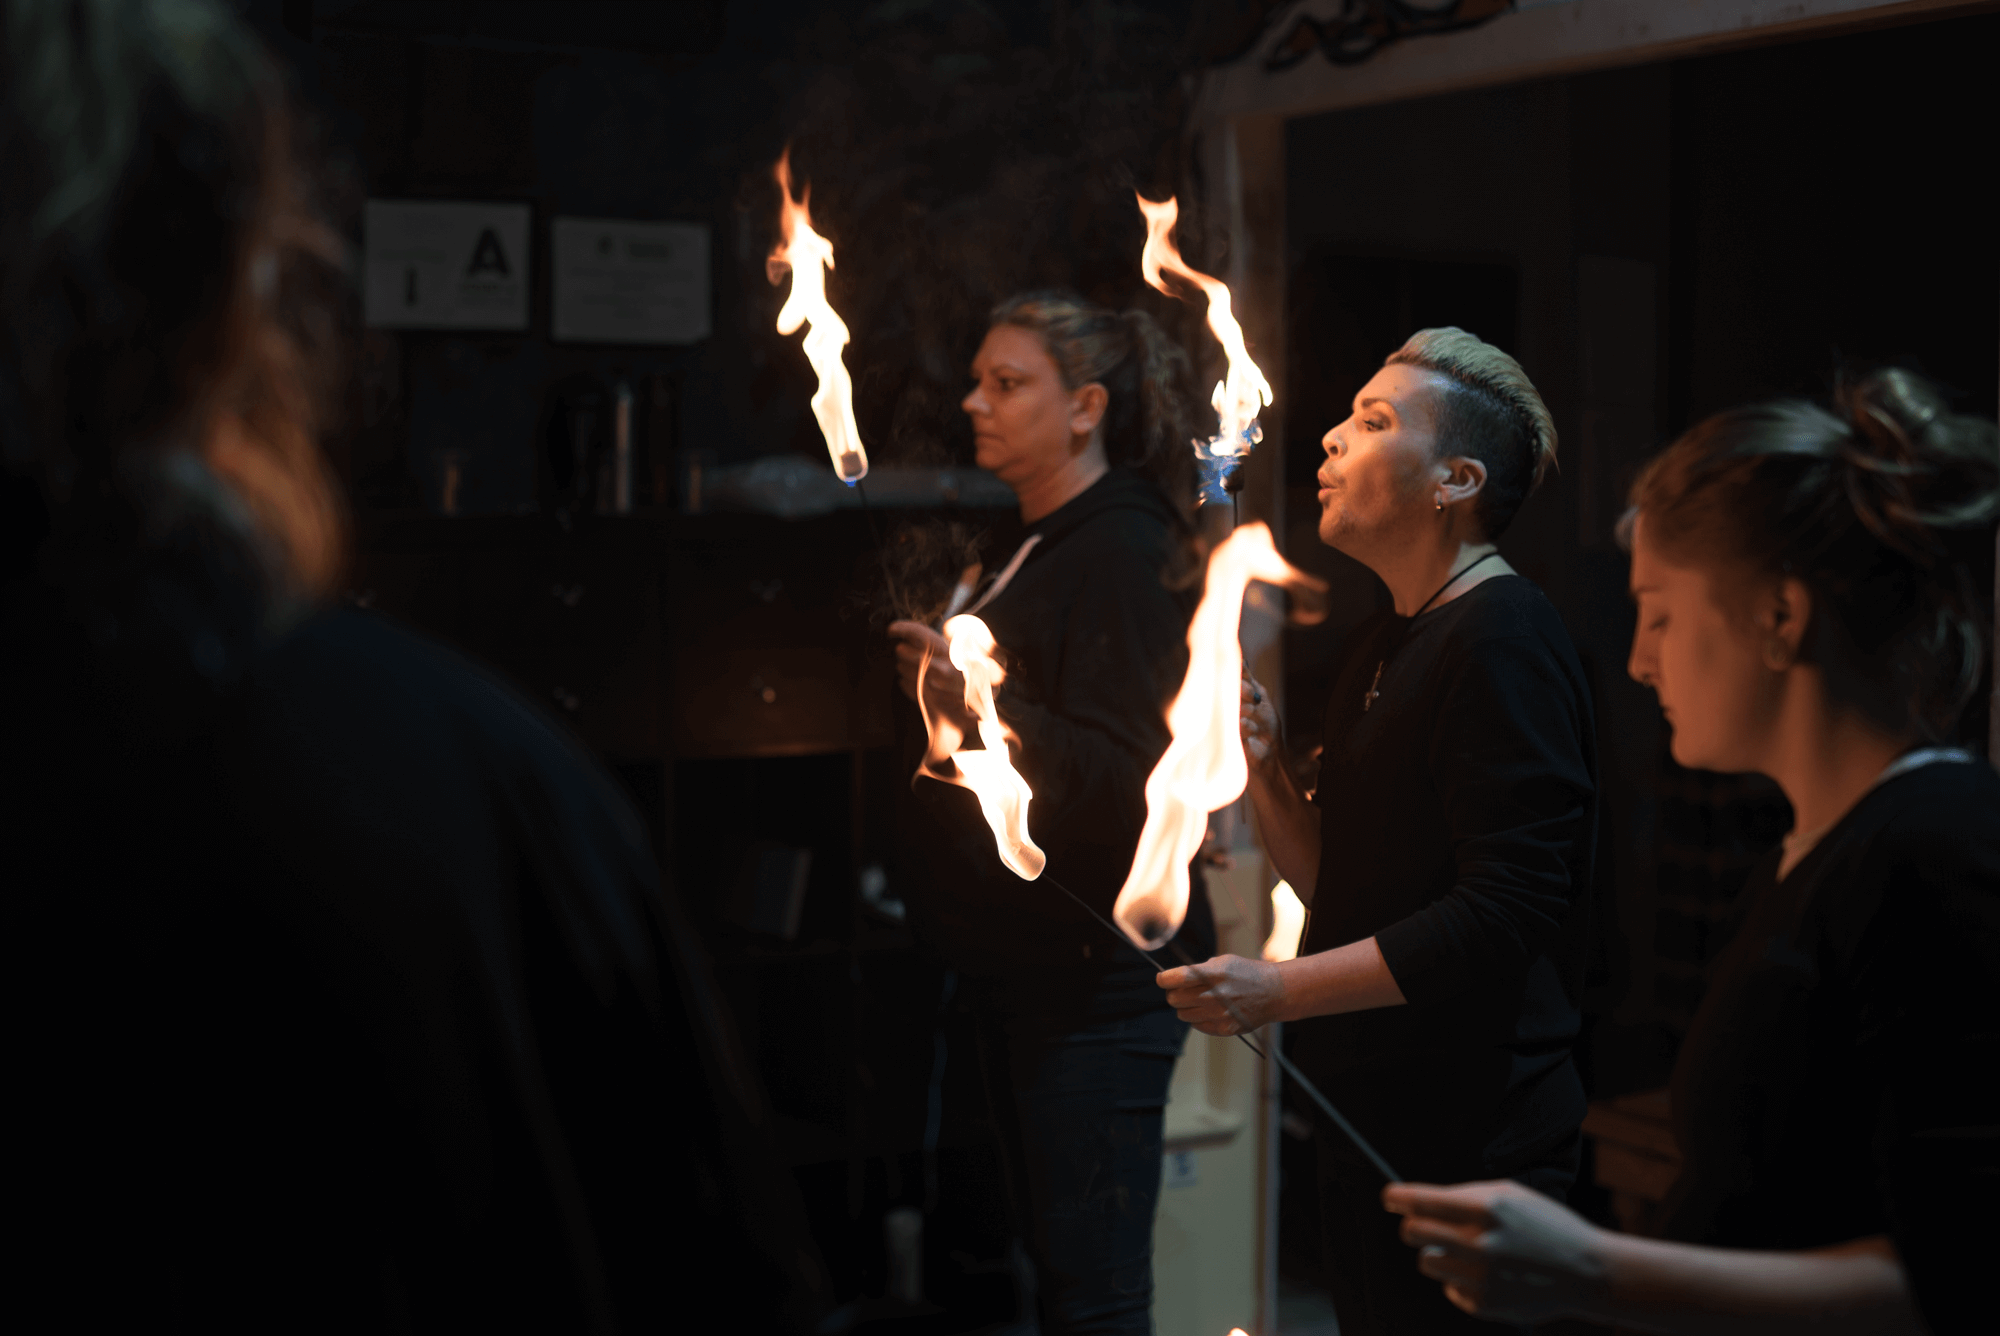 masterclass in fire performance, fire eating